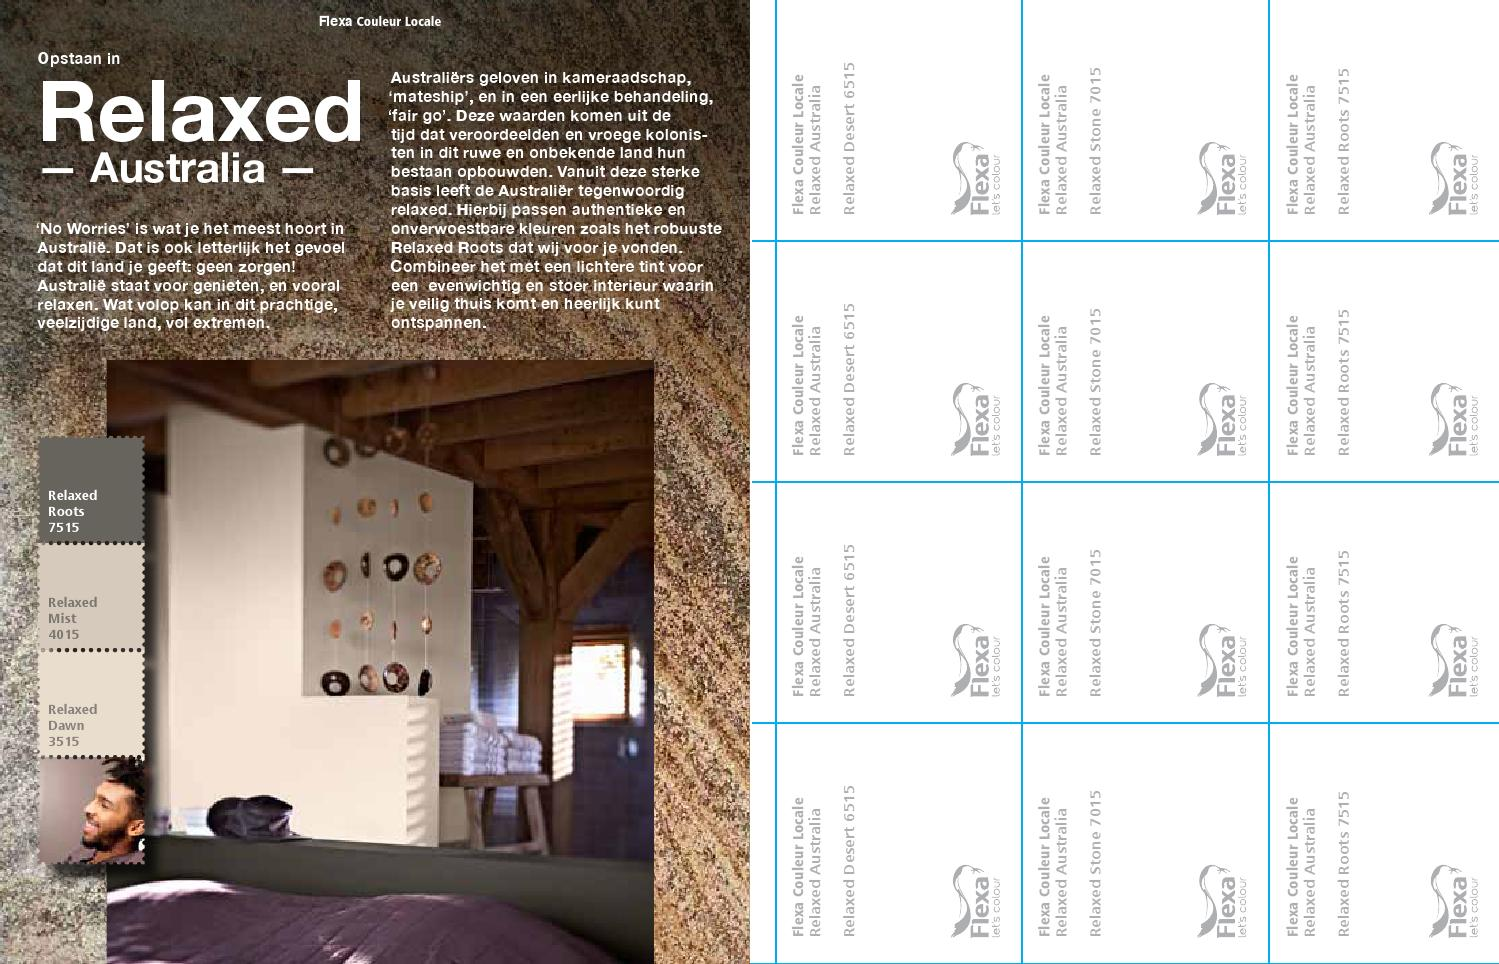 ISSUU - Flexa Couleur Locale - Relaxed Australia by AkzoNobel ...